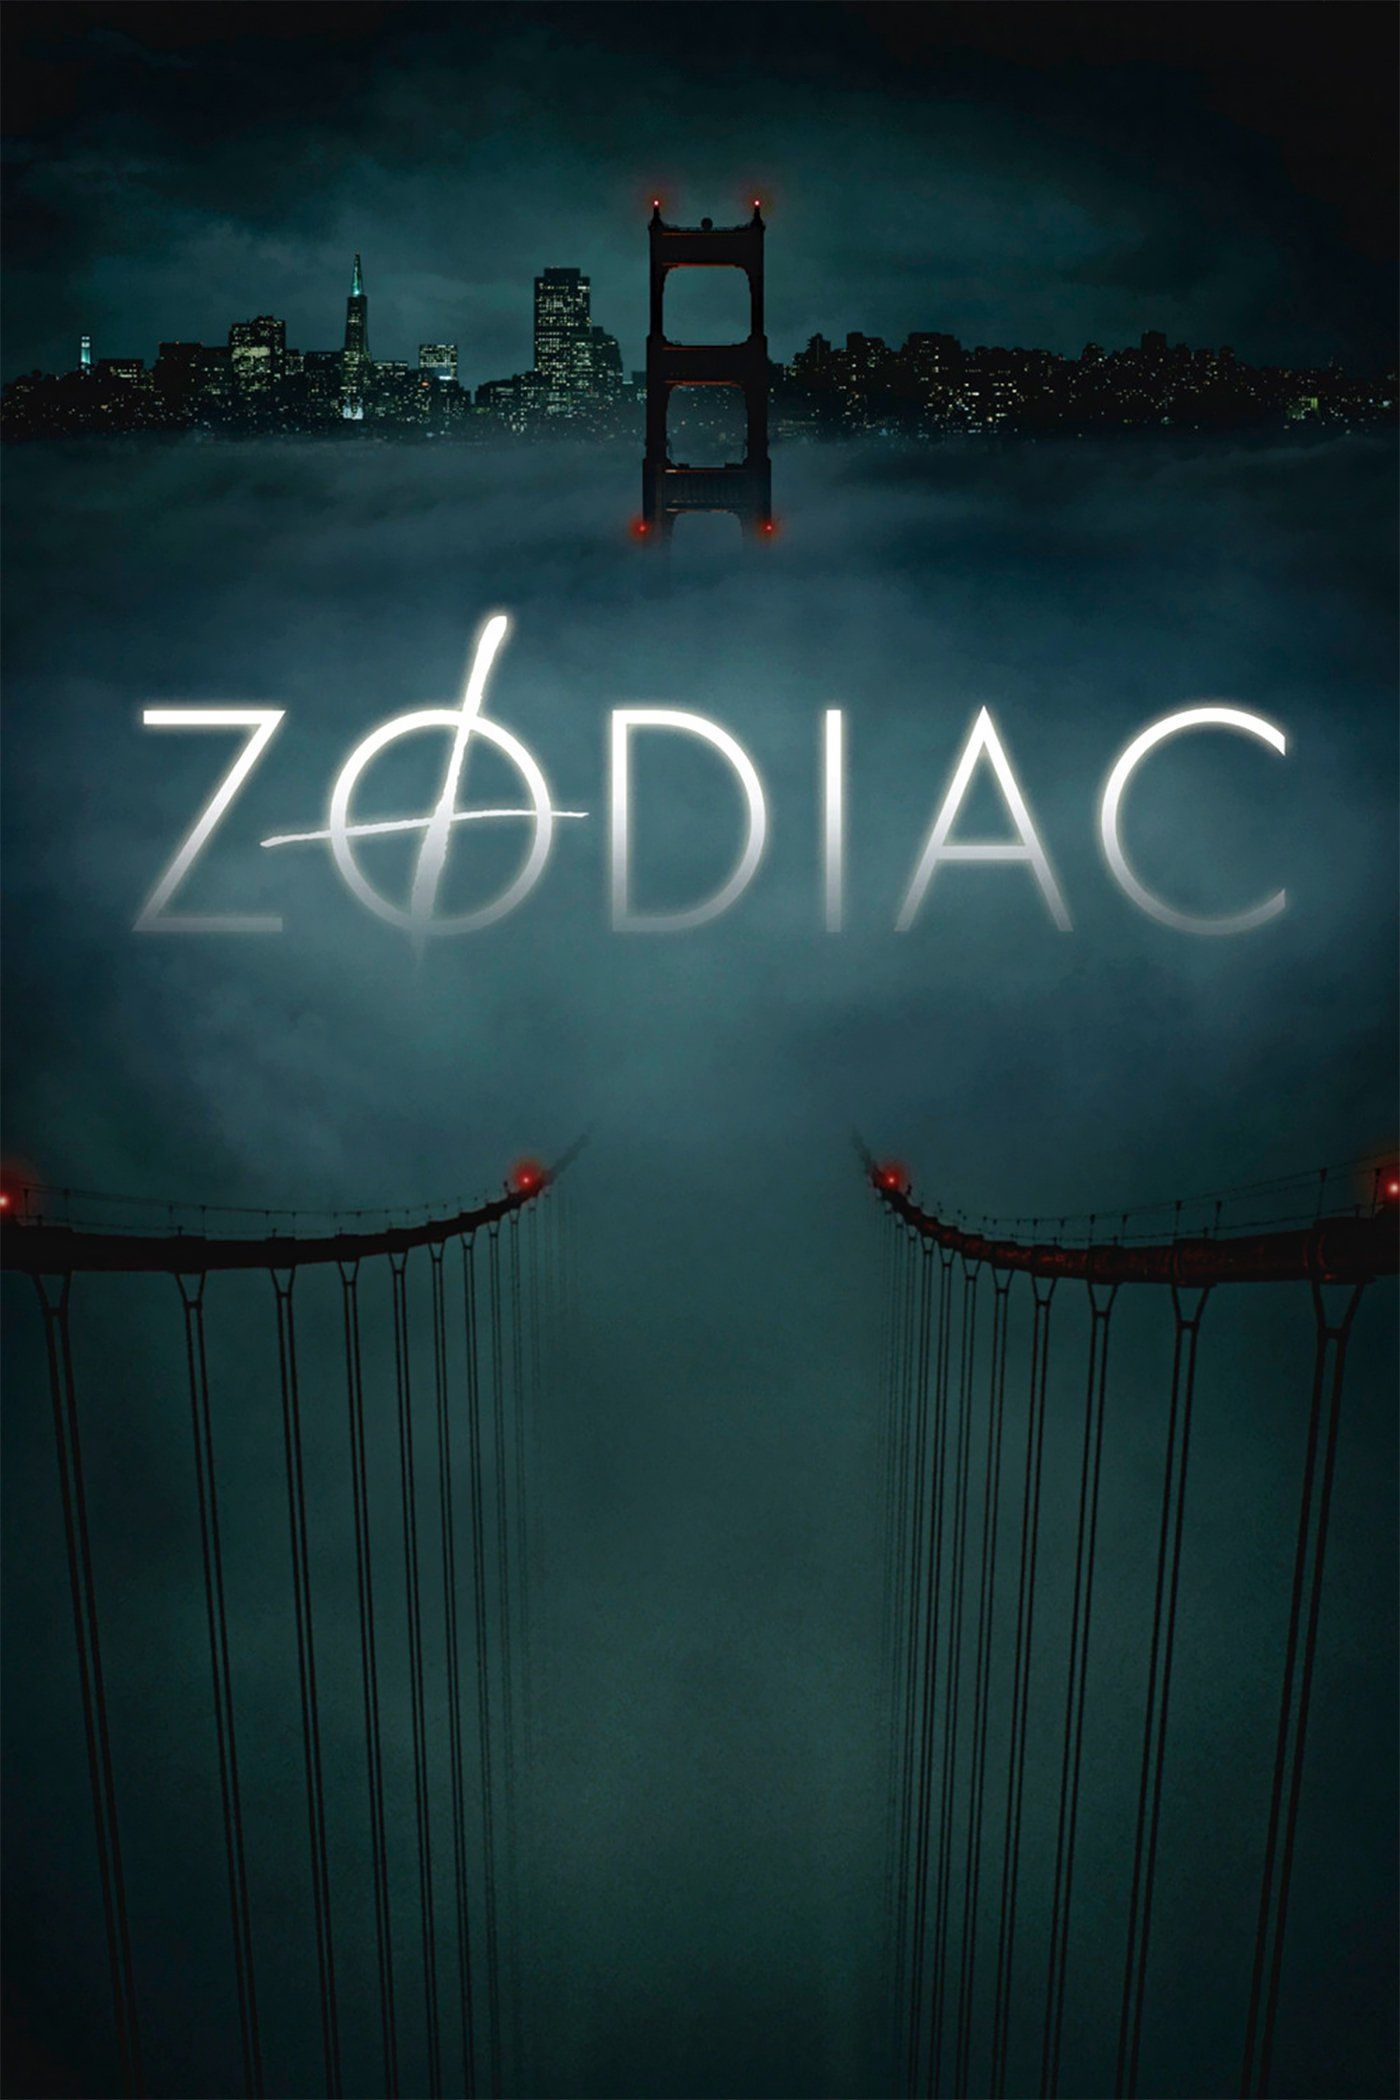 watch movie online zodiac free download full hd quality | watch